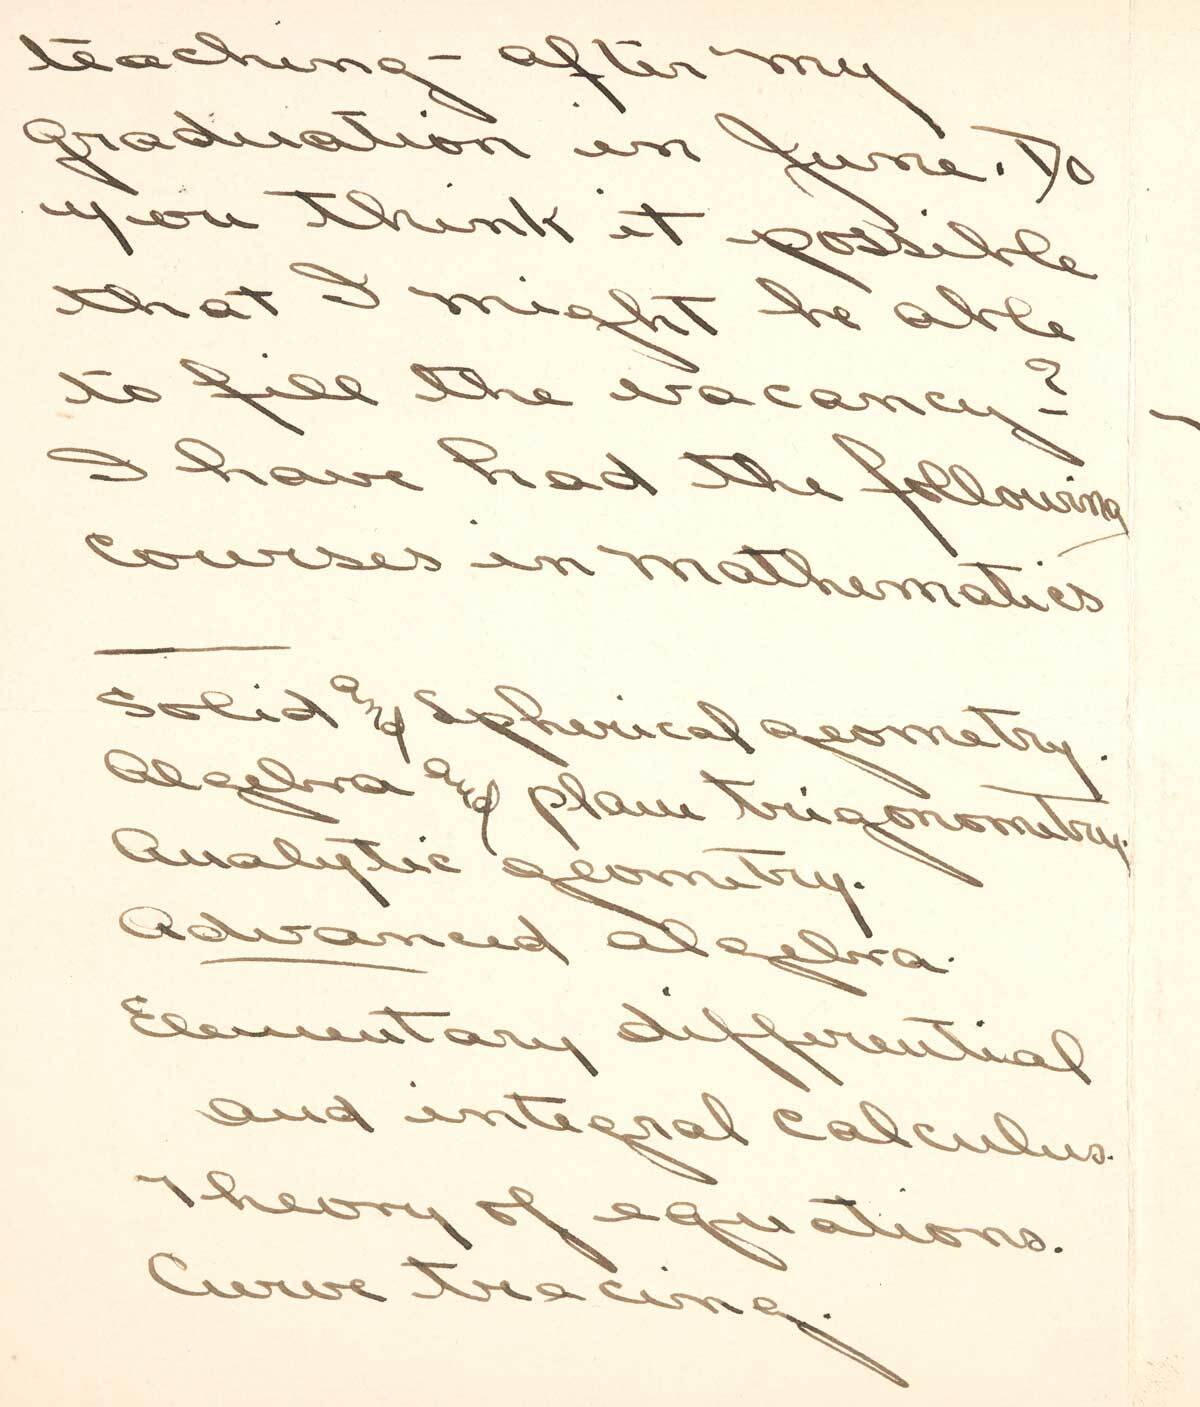 Letter to F.H. Seares of Mt. Wilson observatory from Ruth Barnett p2 | Image courtesy of the Observatories of the Carnegie Institution for Science Collection at the Huntington Library, San Marino, California